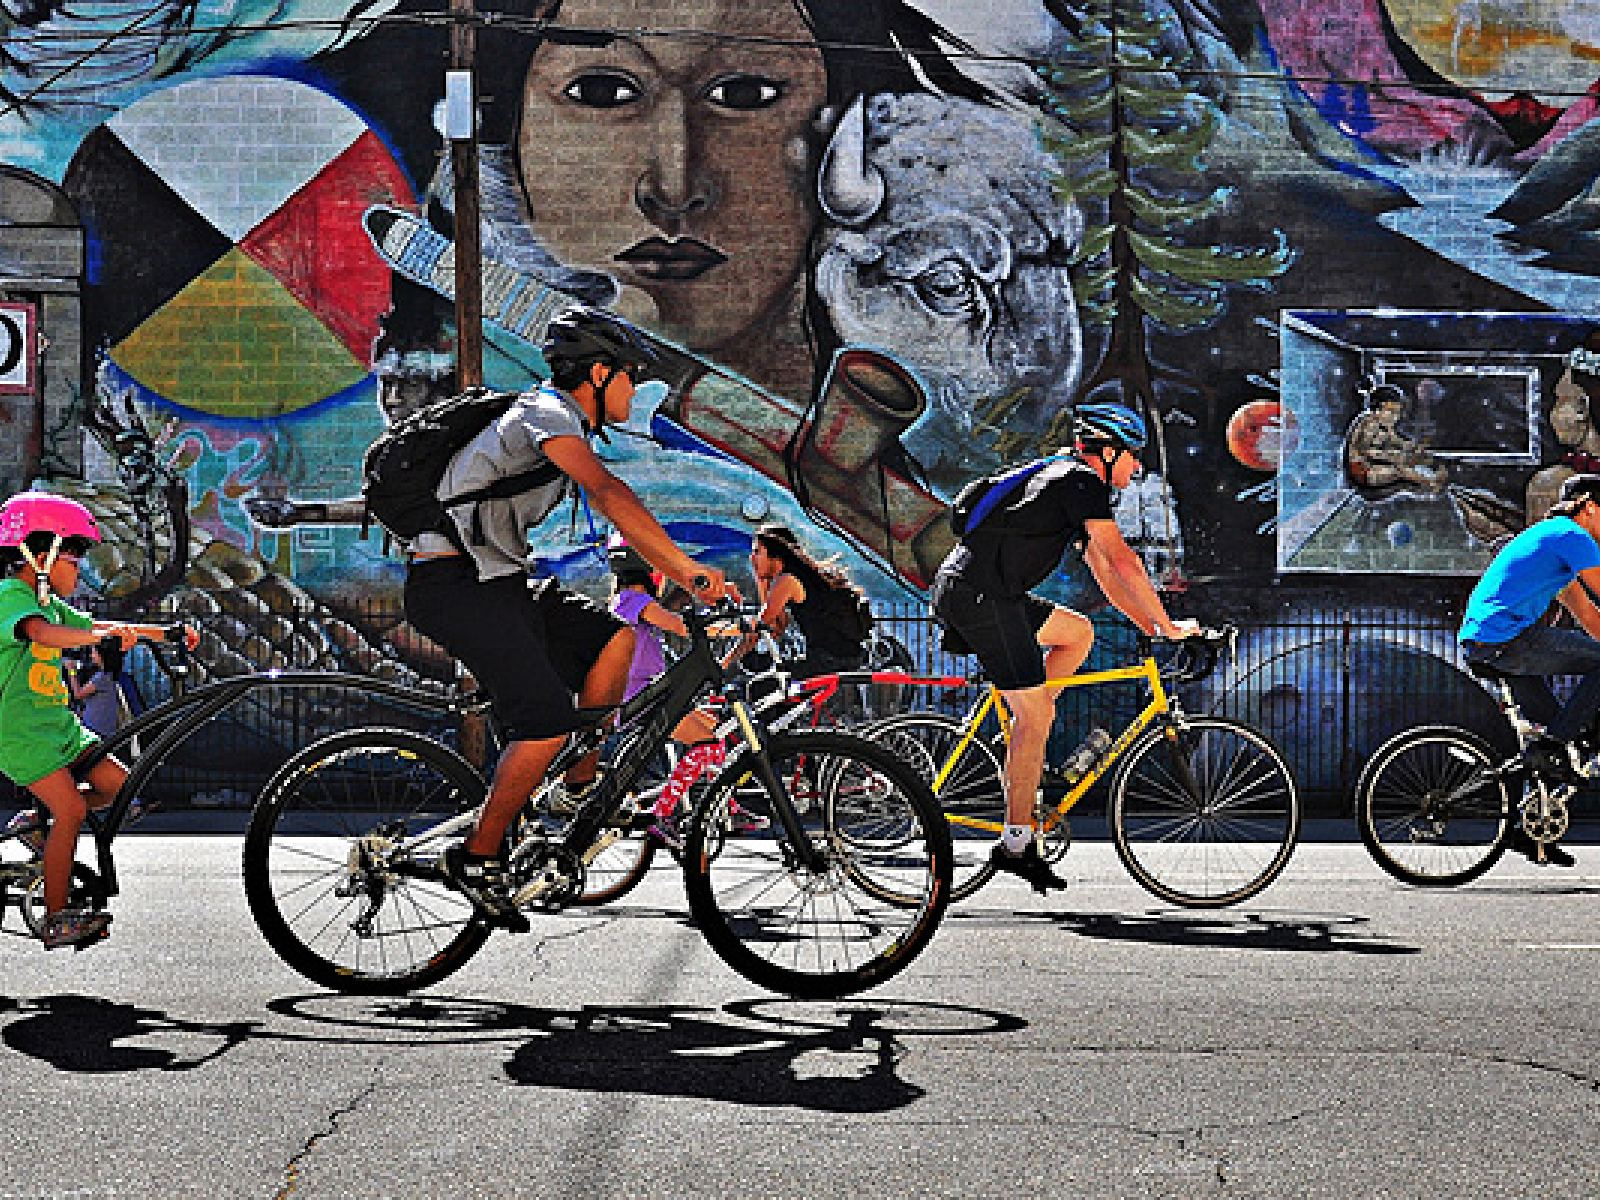 Main image for article titled Pedal Power: Bicycling in Los Angeles